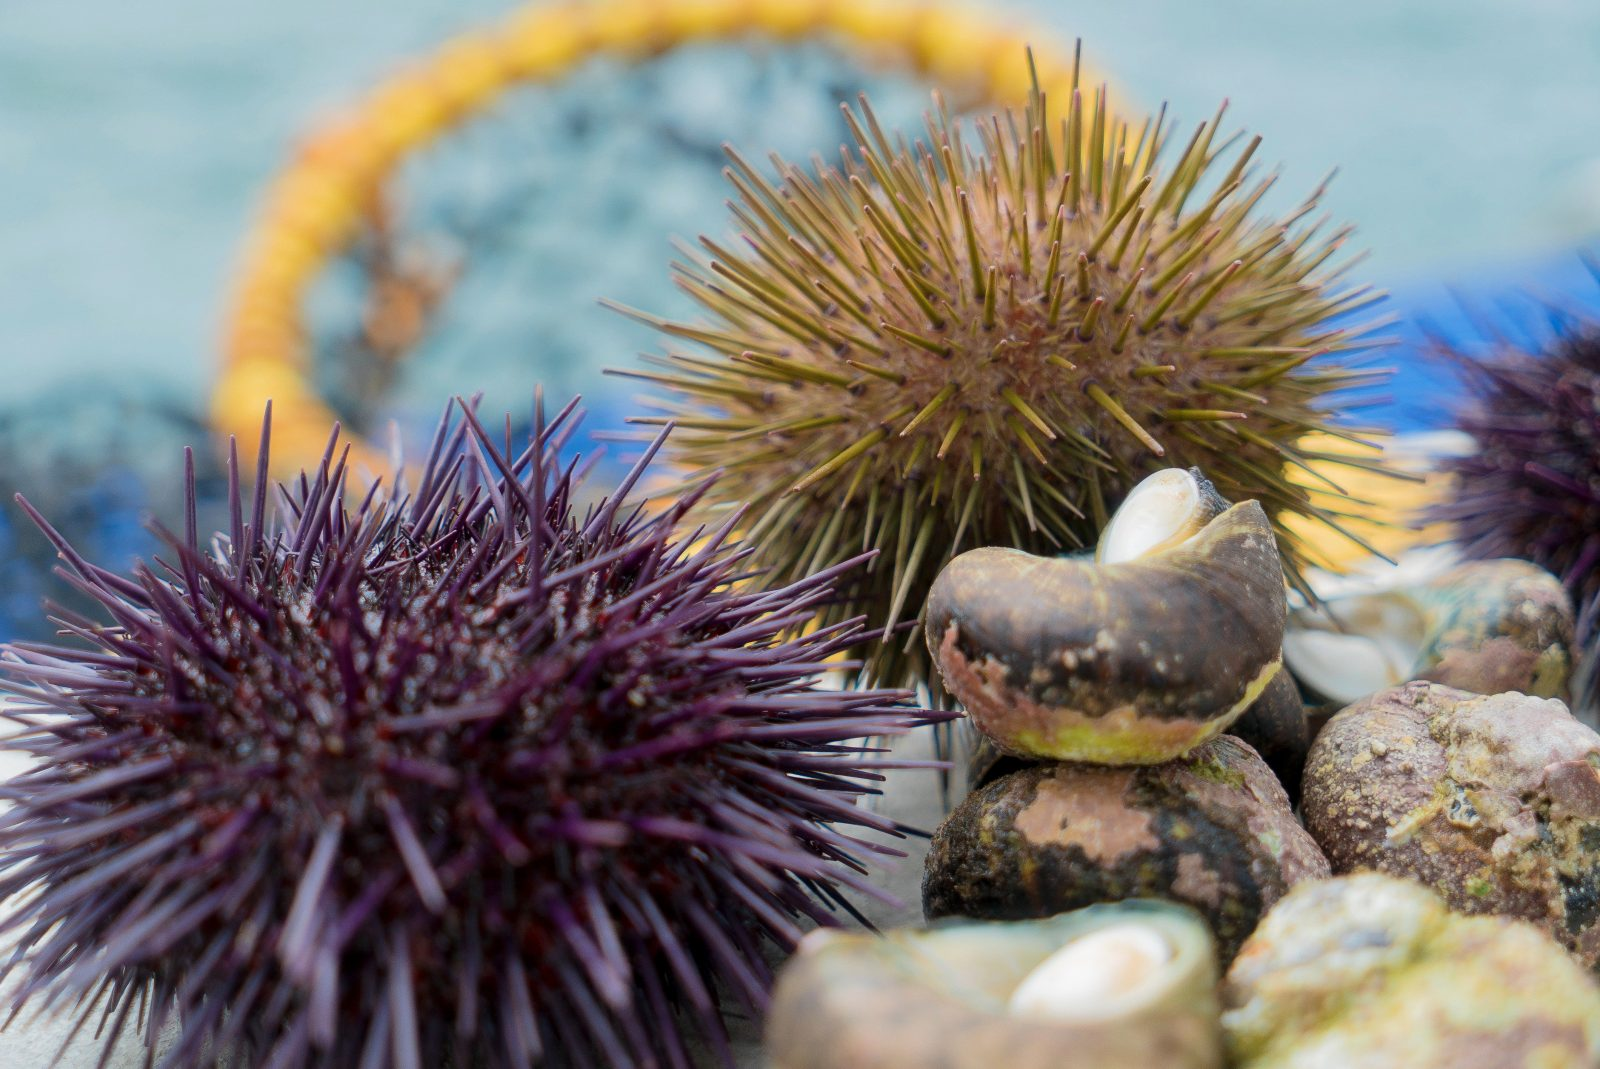 Periwinkles and Seaurchin